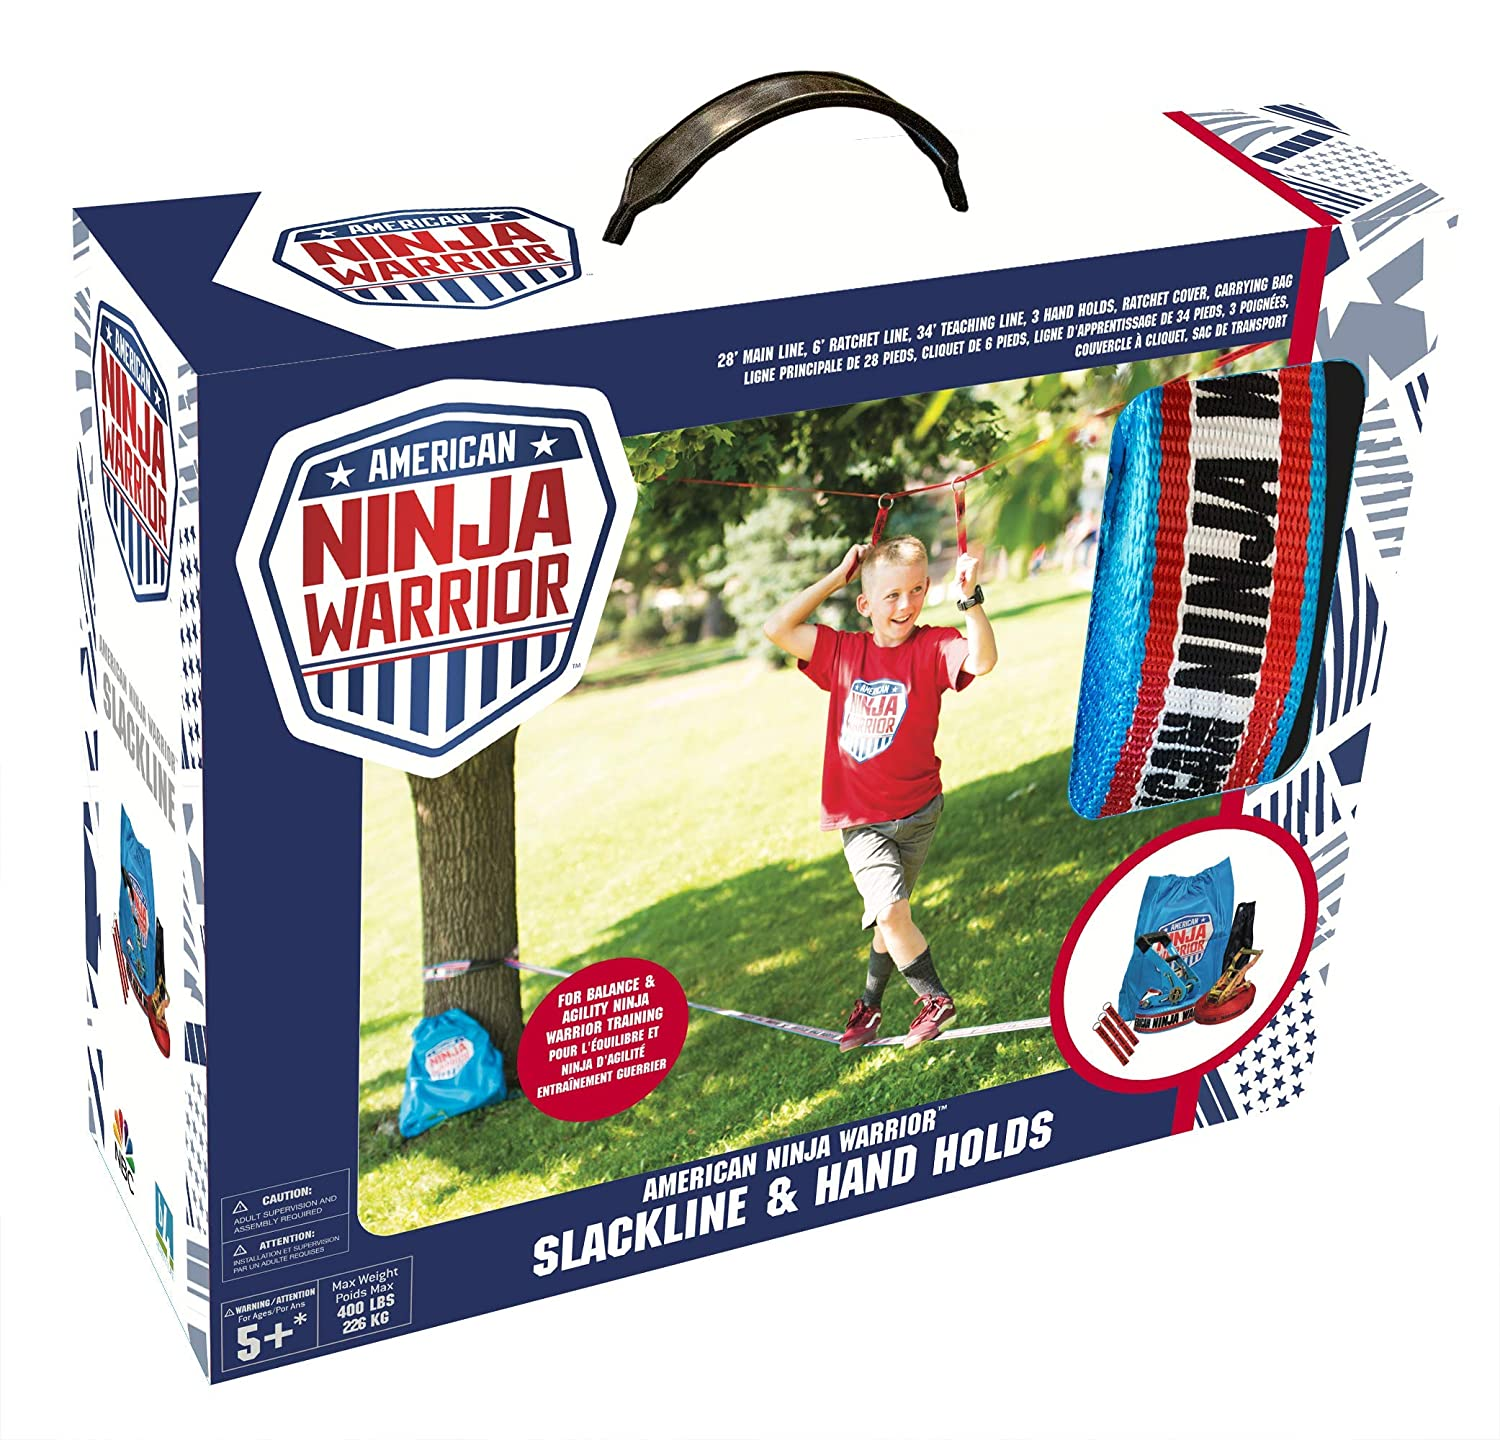 Amazon.com: American Ninja Warrior 34 Slackline with Hand ...